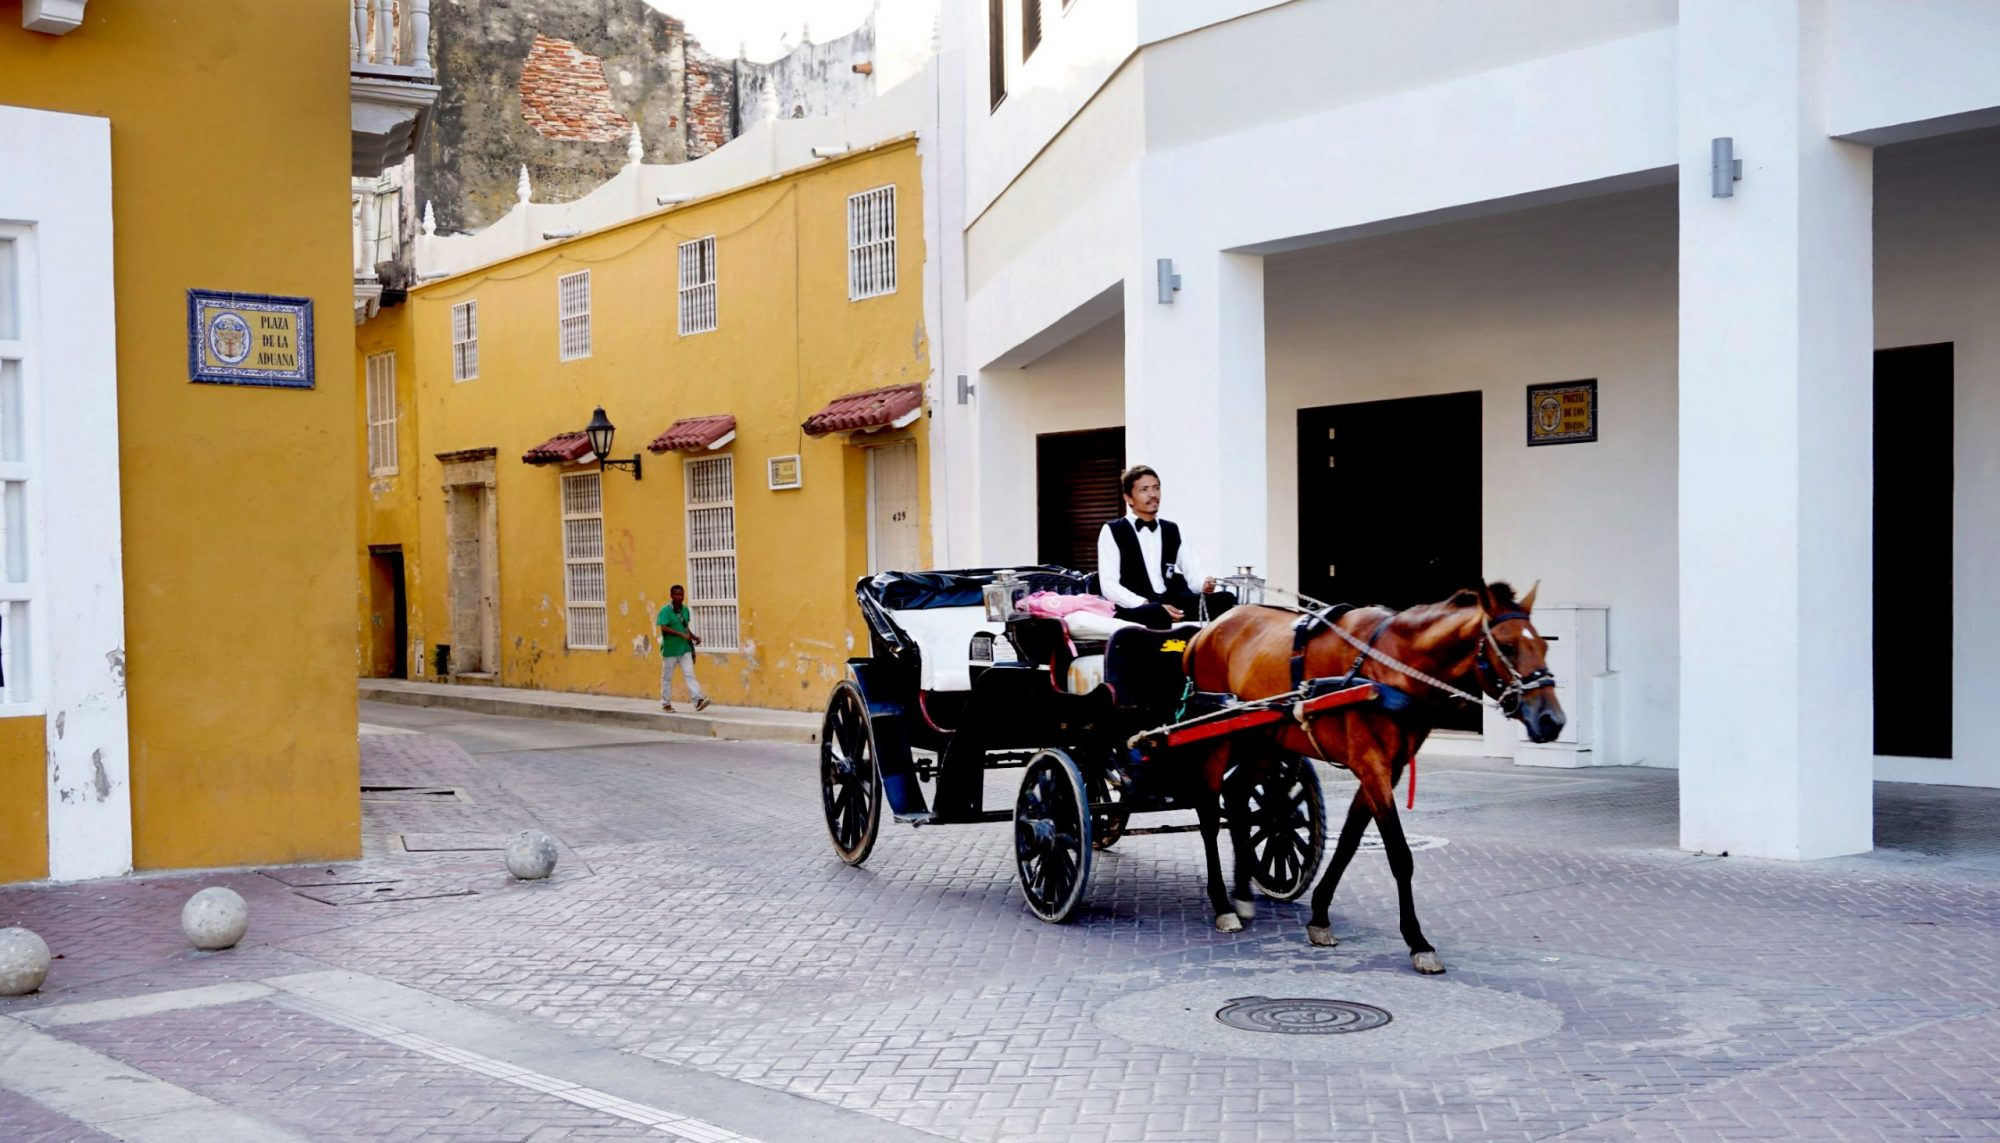 Cartagena de Indias Carriage Ride